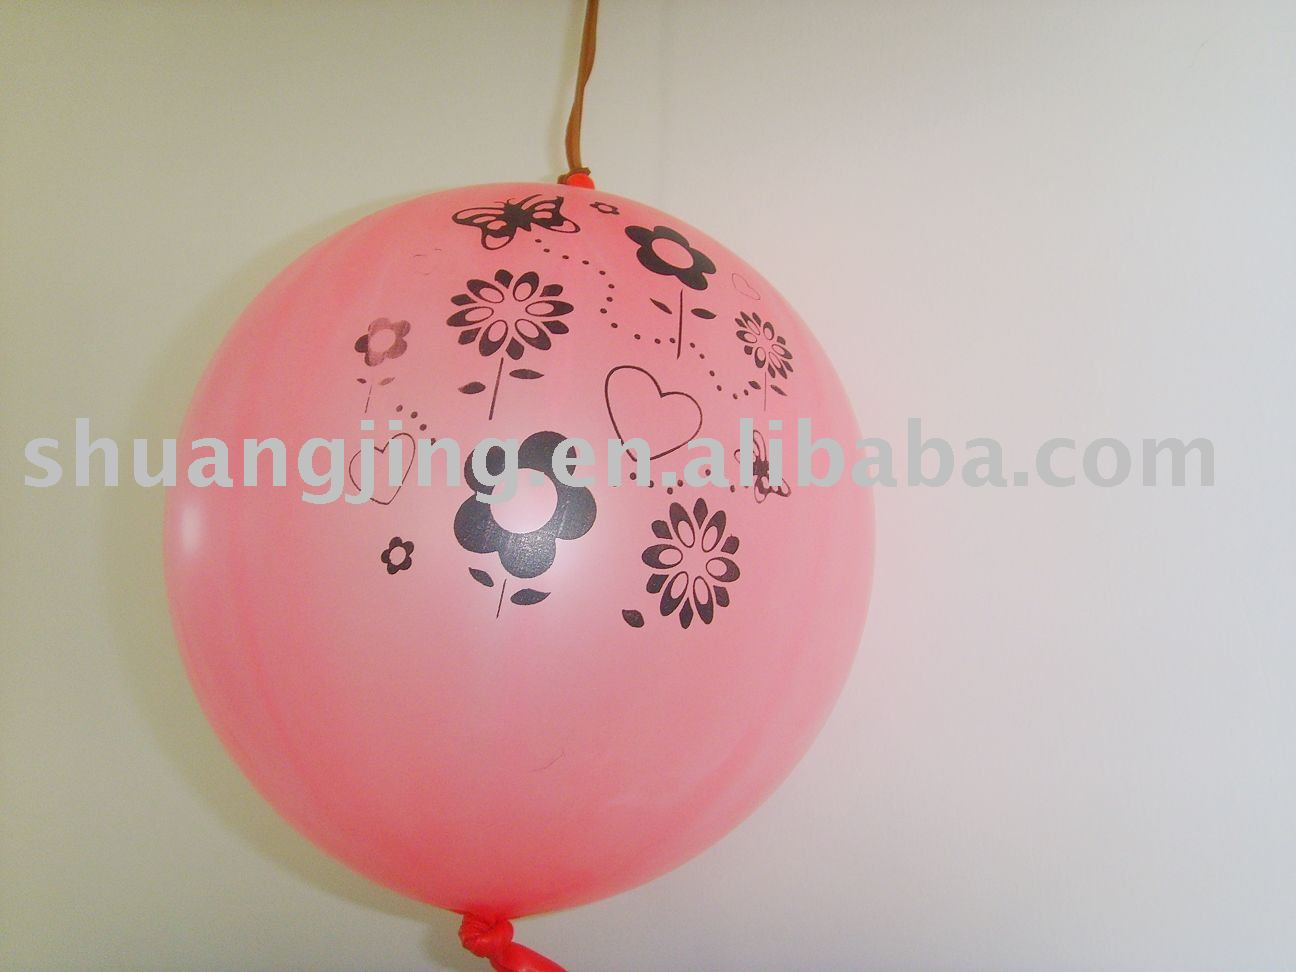 punchball balloon celebration